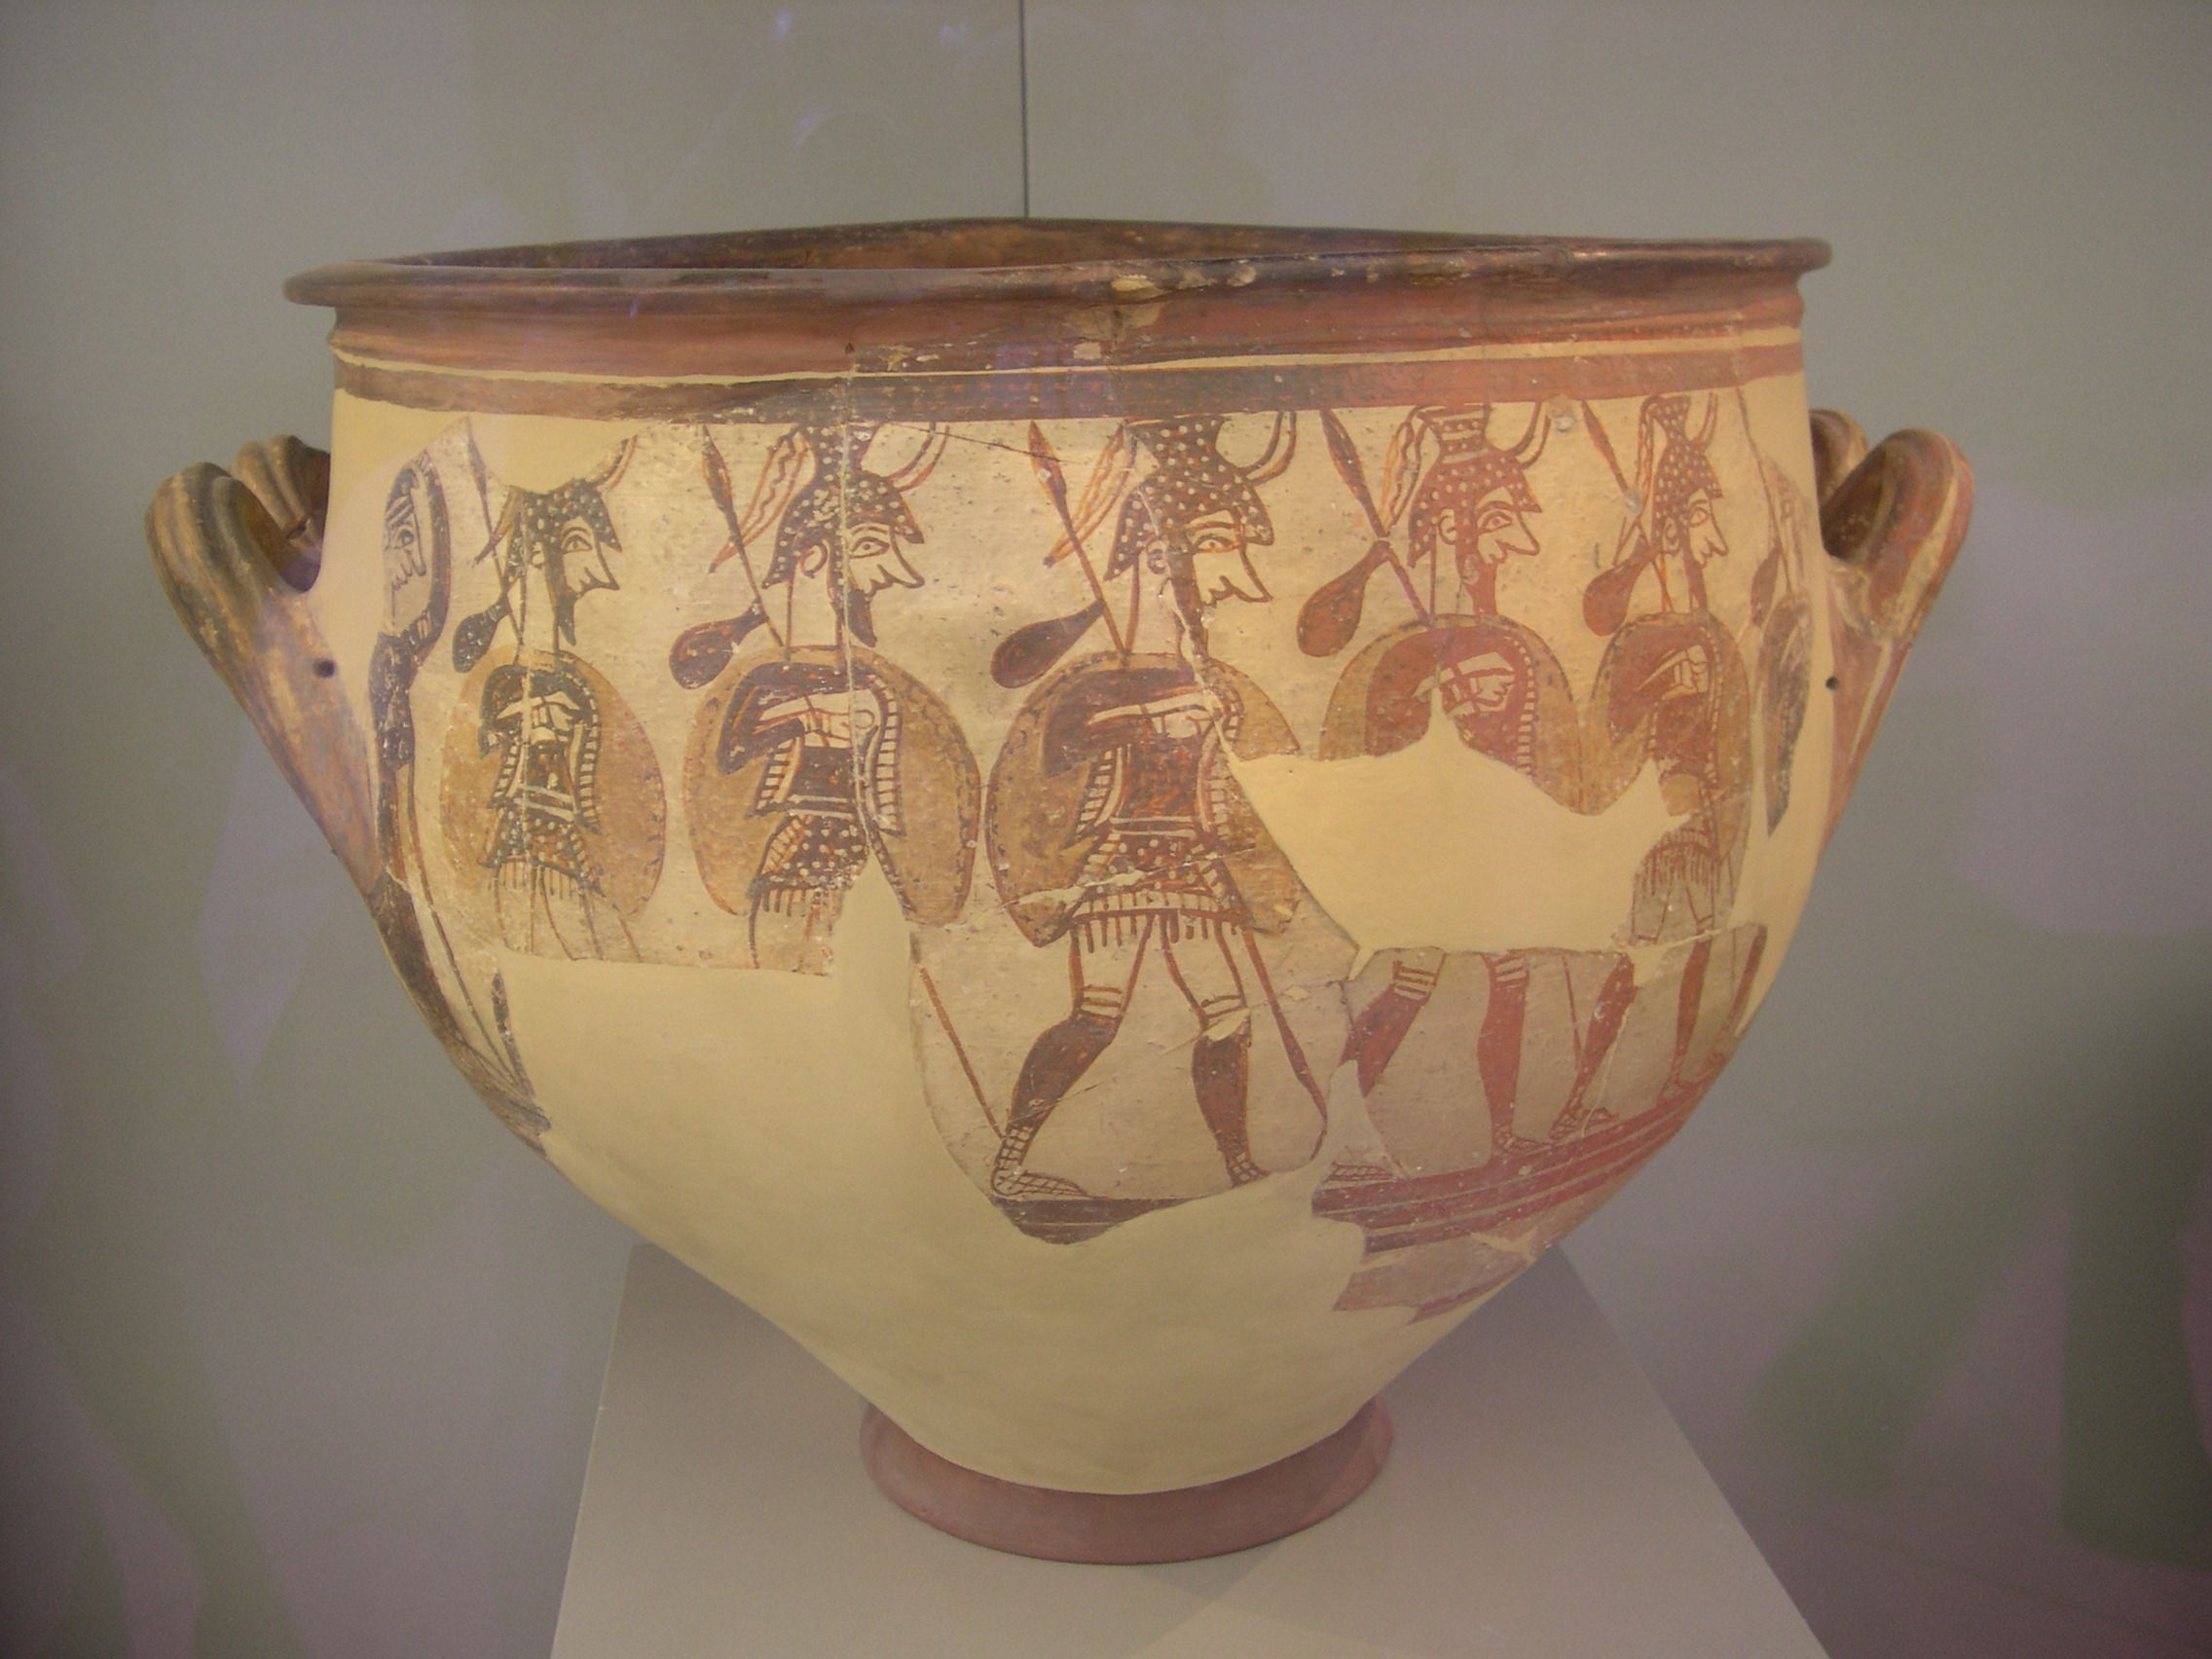 Late bronze agemycenaean age pottery from this time period late bronze agemycenaean age pottery from this time period depicting warrior men departing for battle from the house of the warrior krater my reviewsmspy